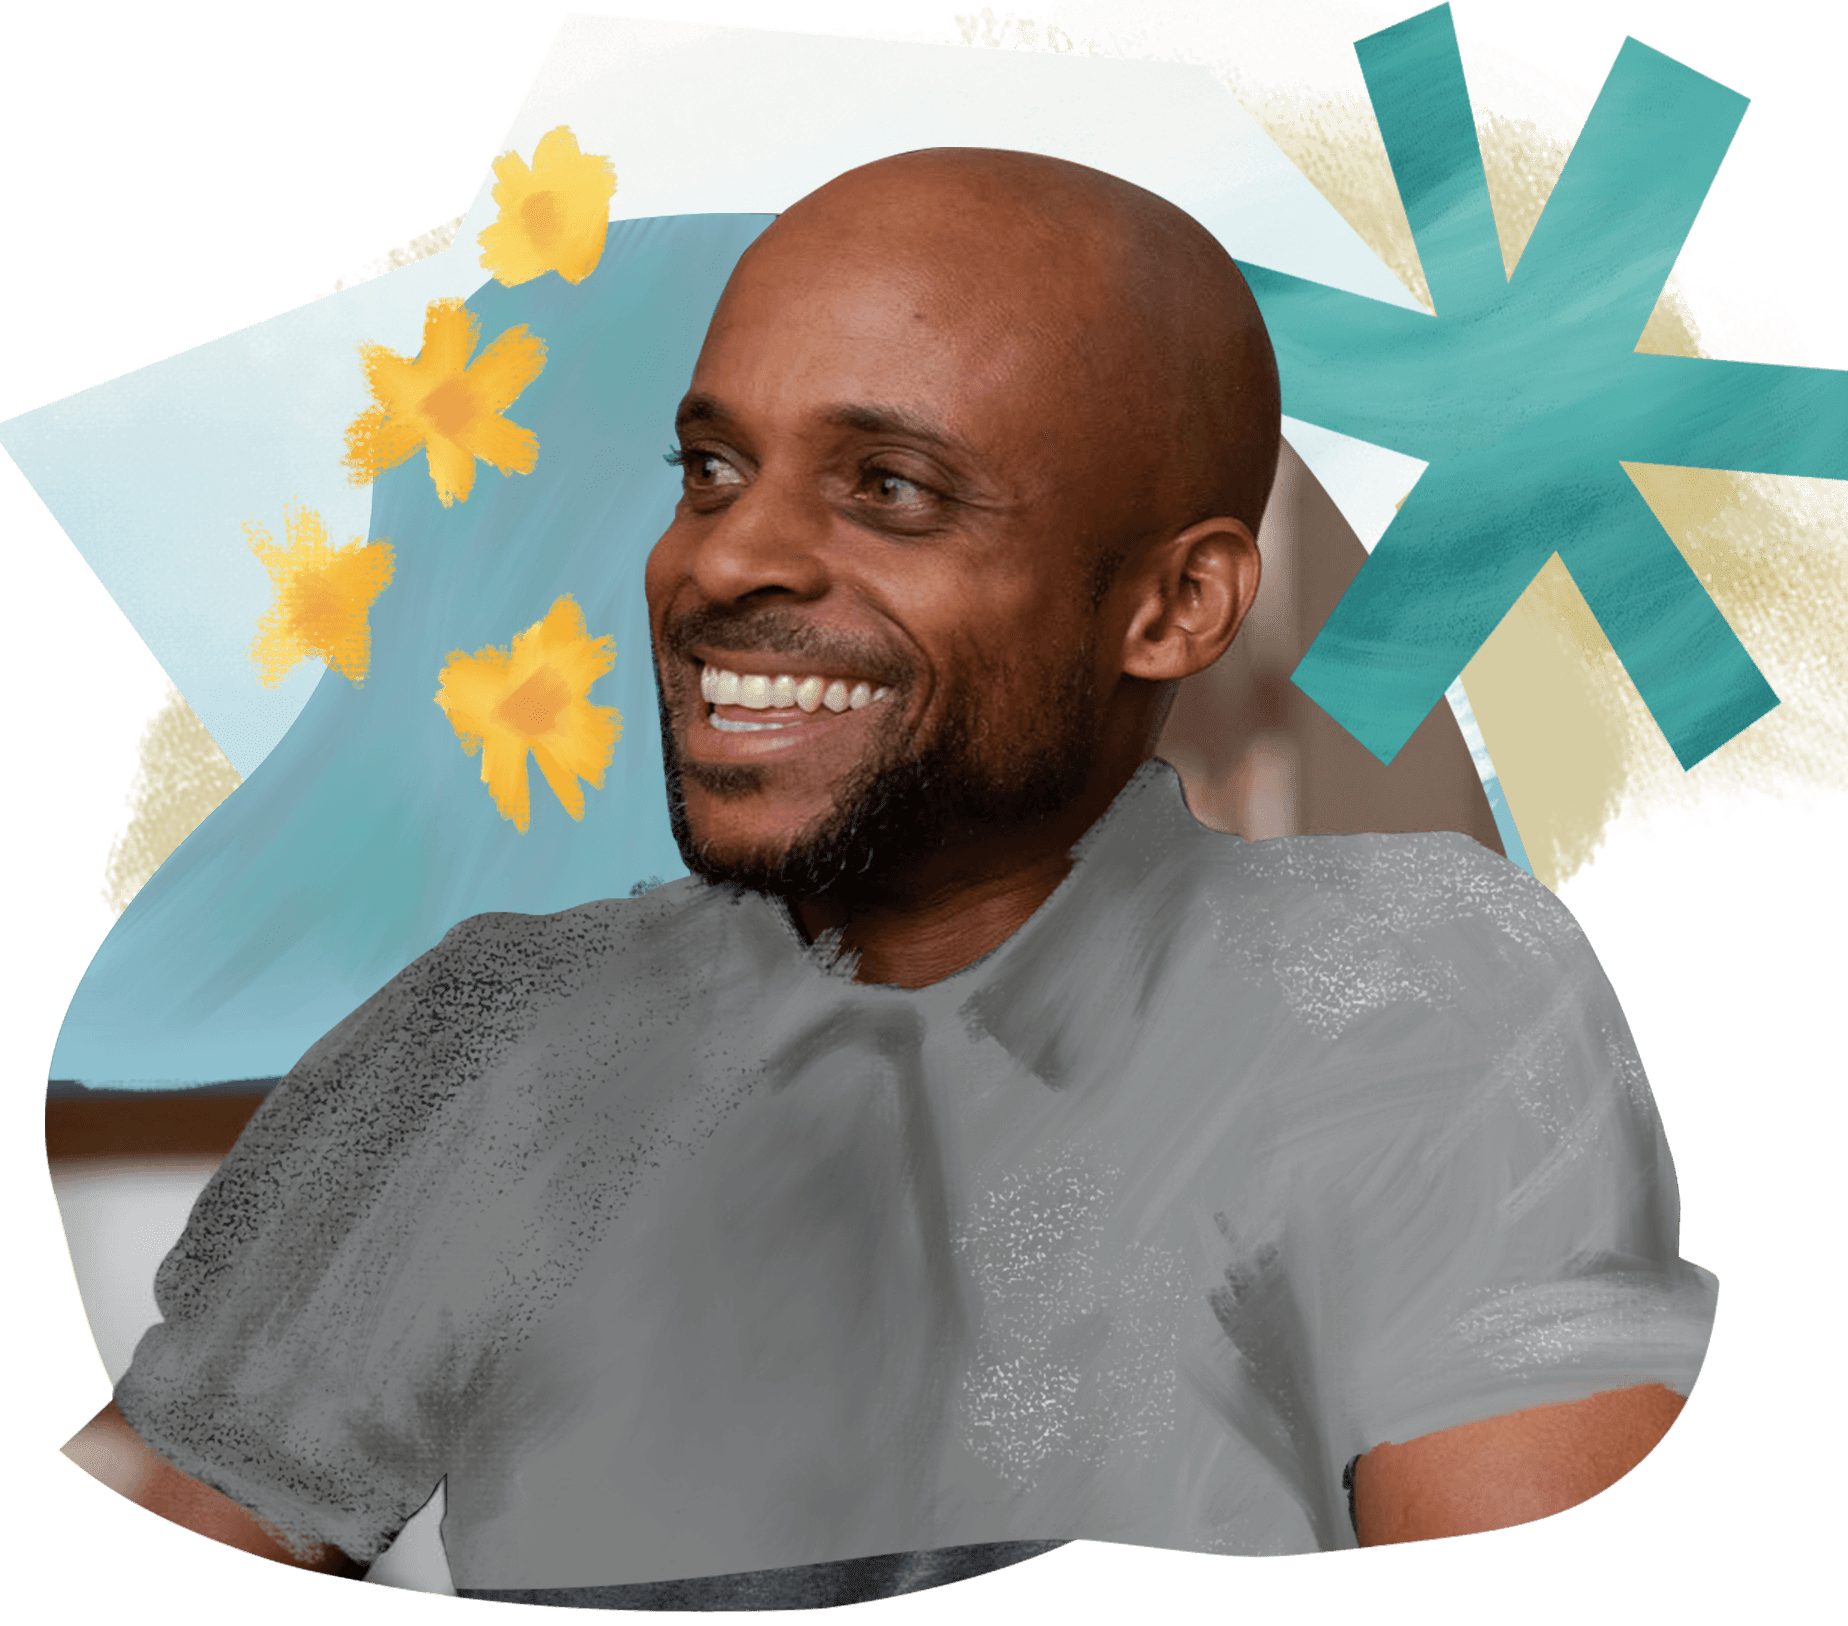 A man looks off to the side and smiles; he is wearing a gray shirt. The background is an artistic design with colorful shapes.